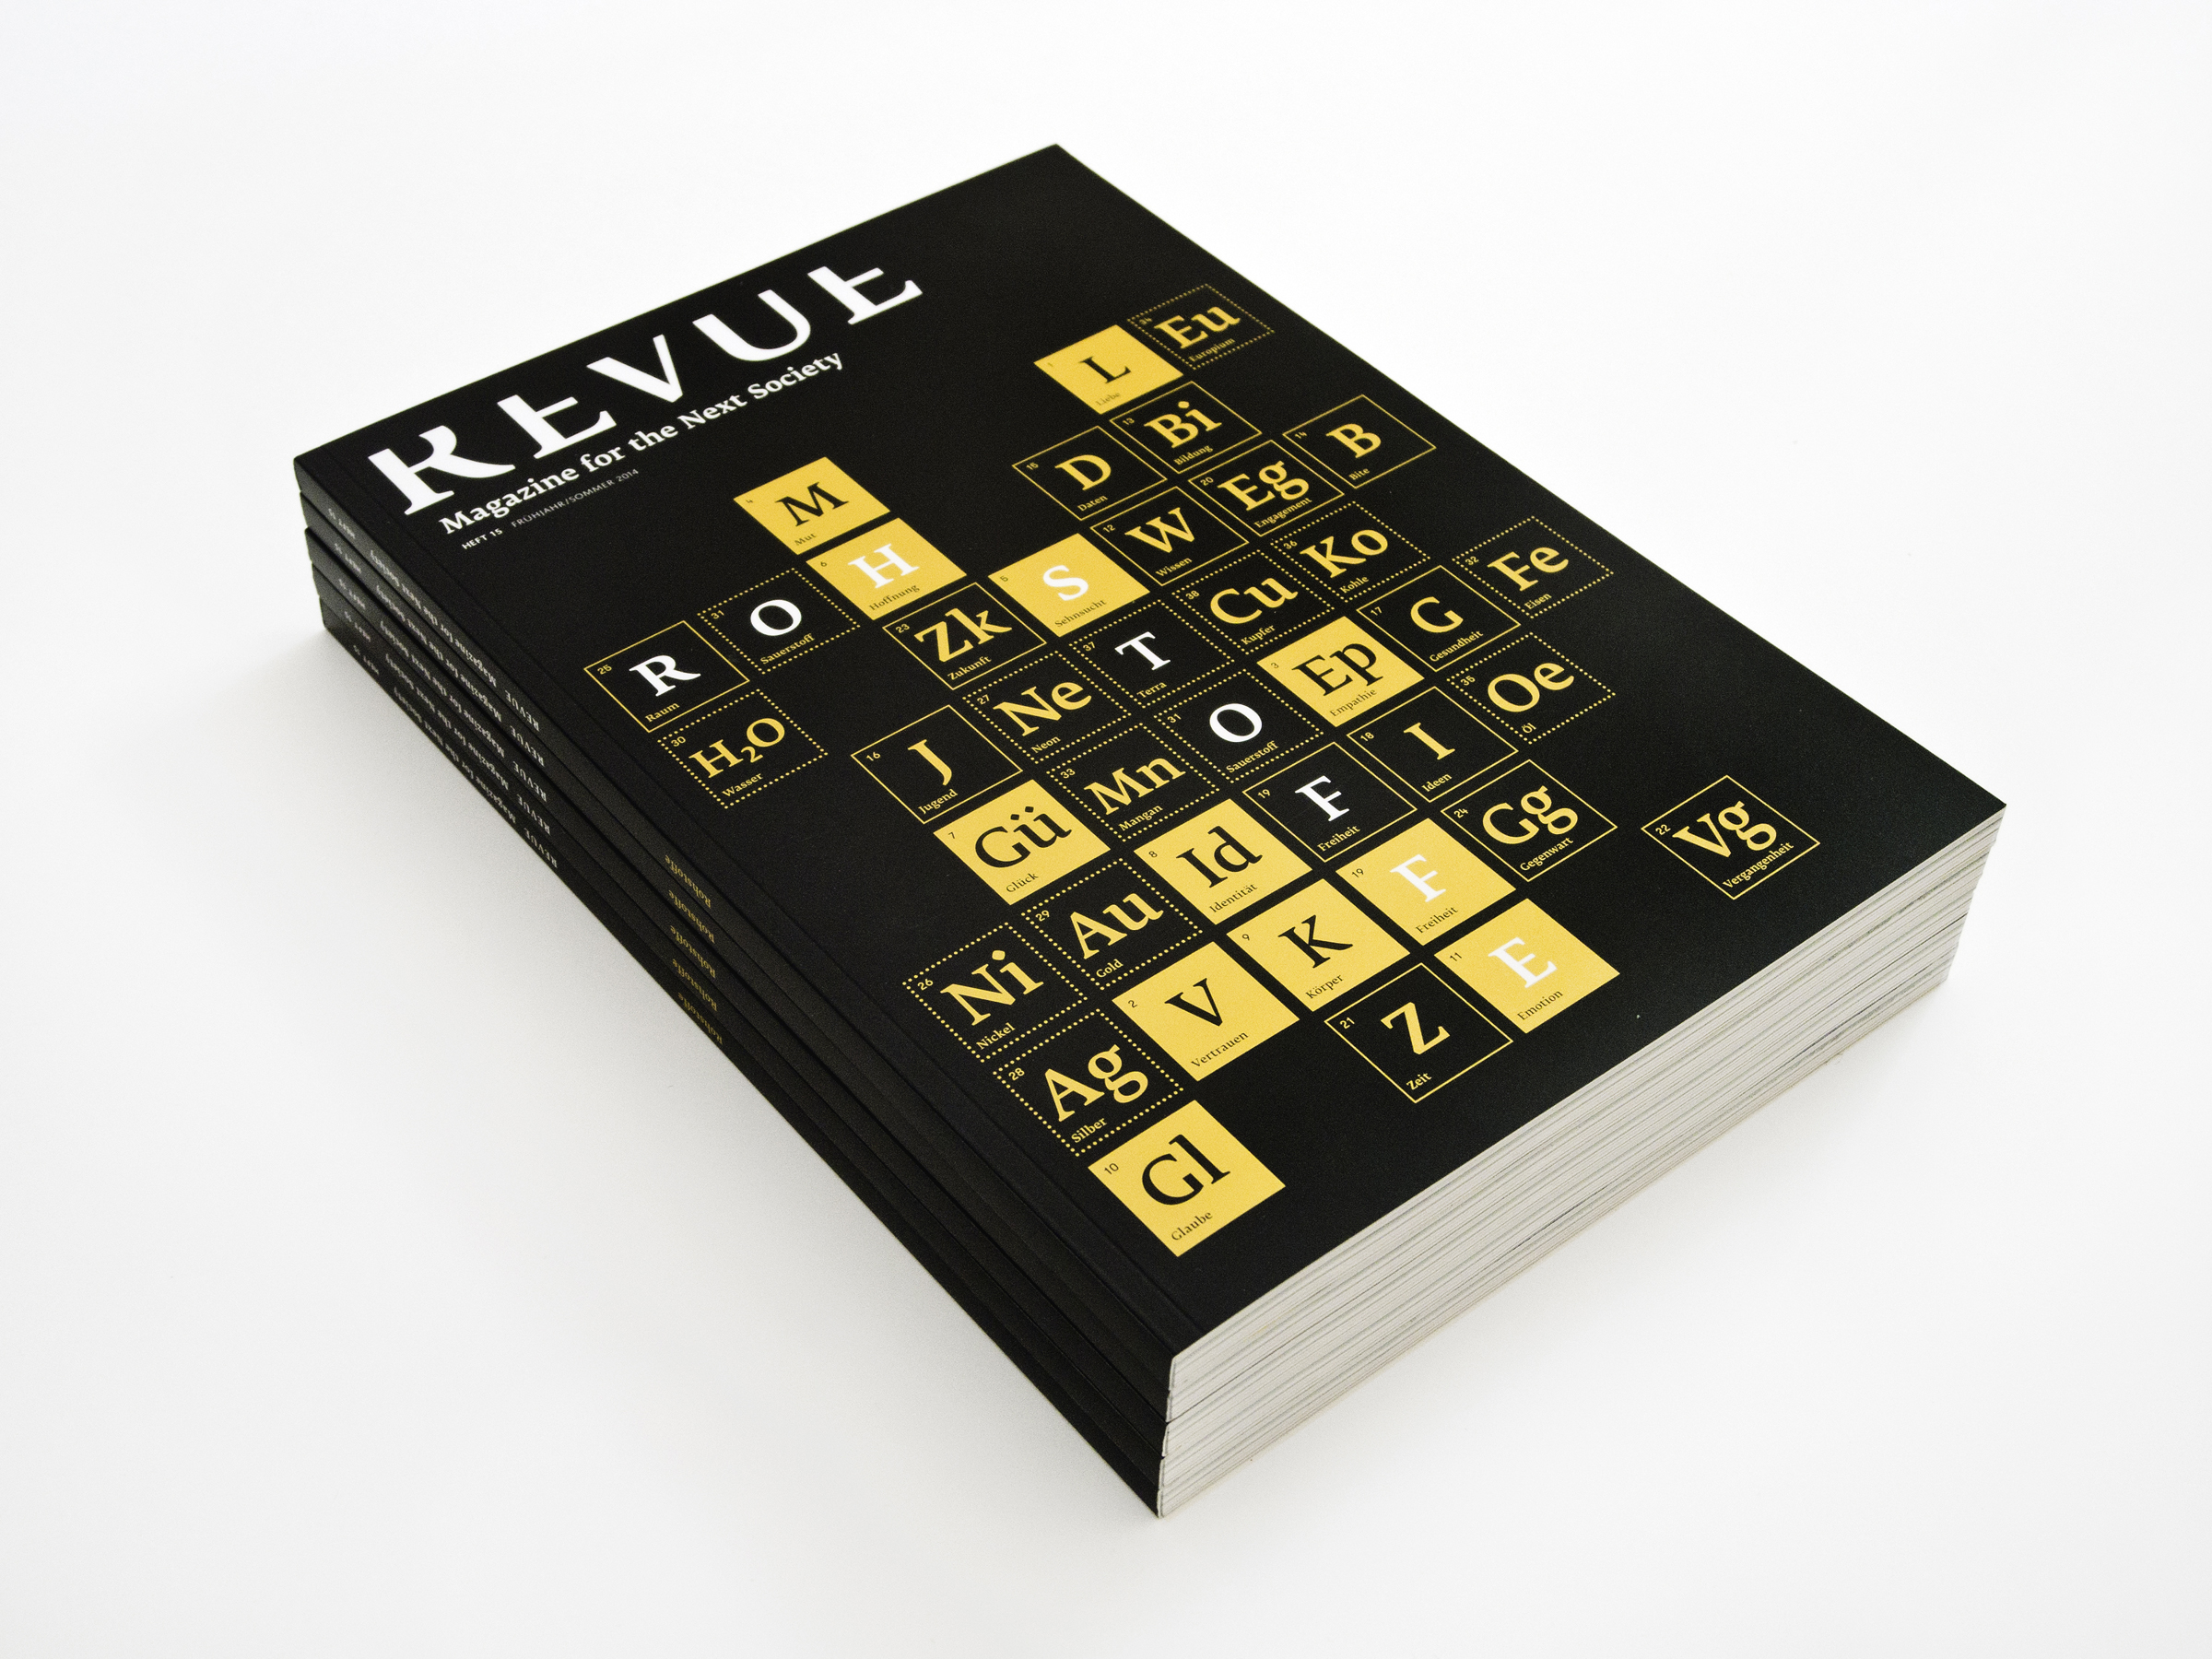 Revue — Magazine for the Next Society